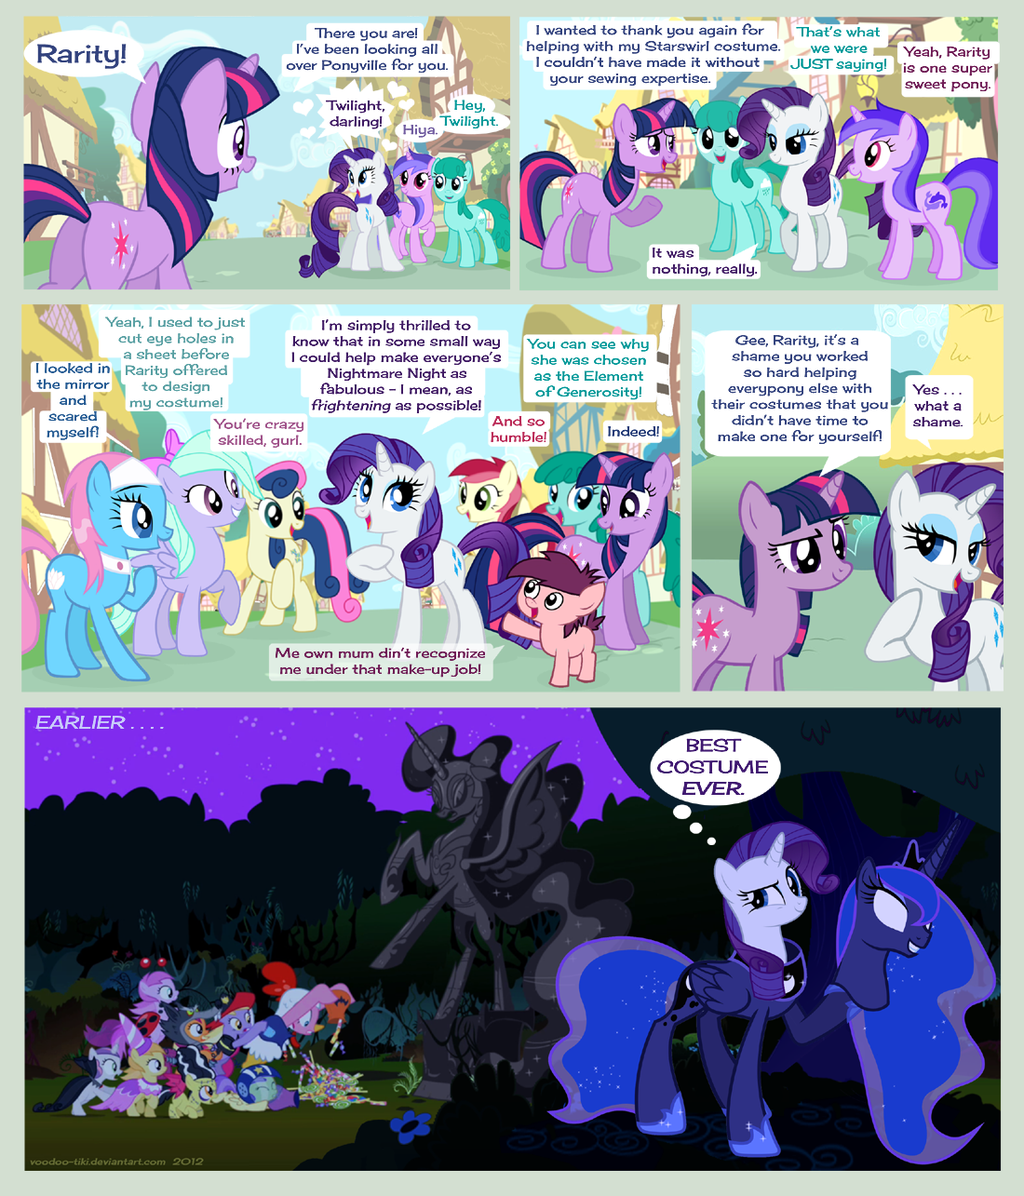 about last nightmare night       by vood